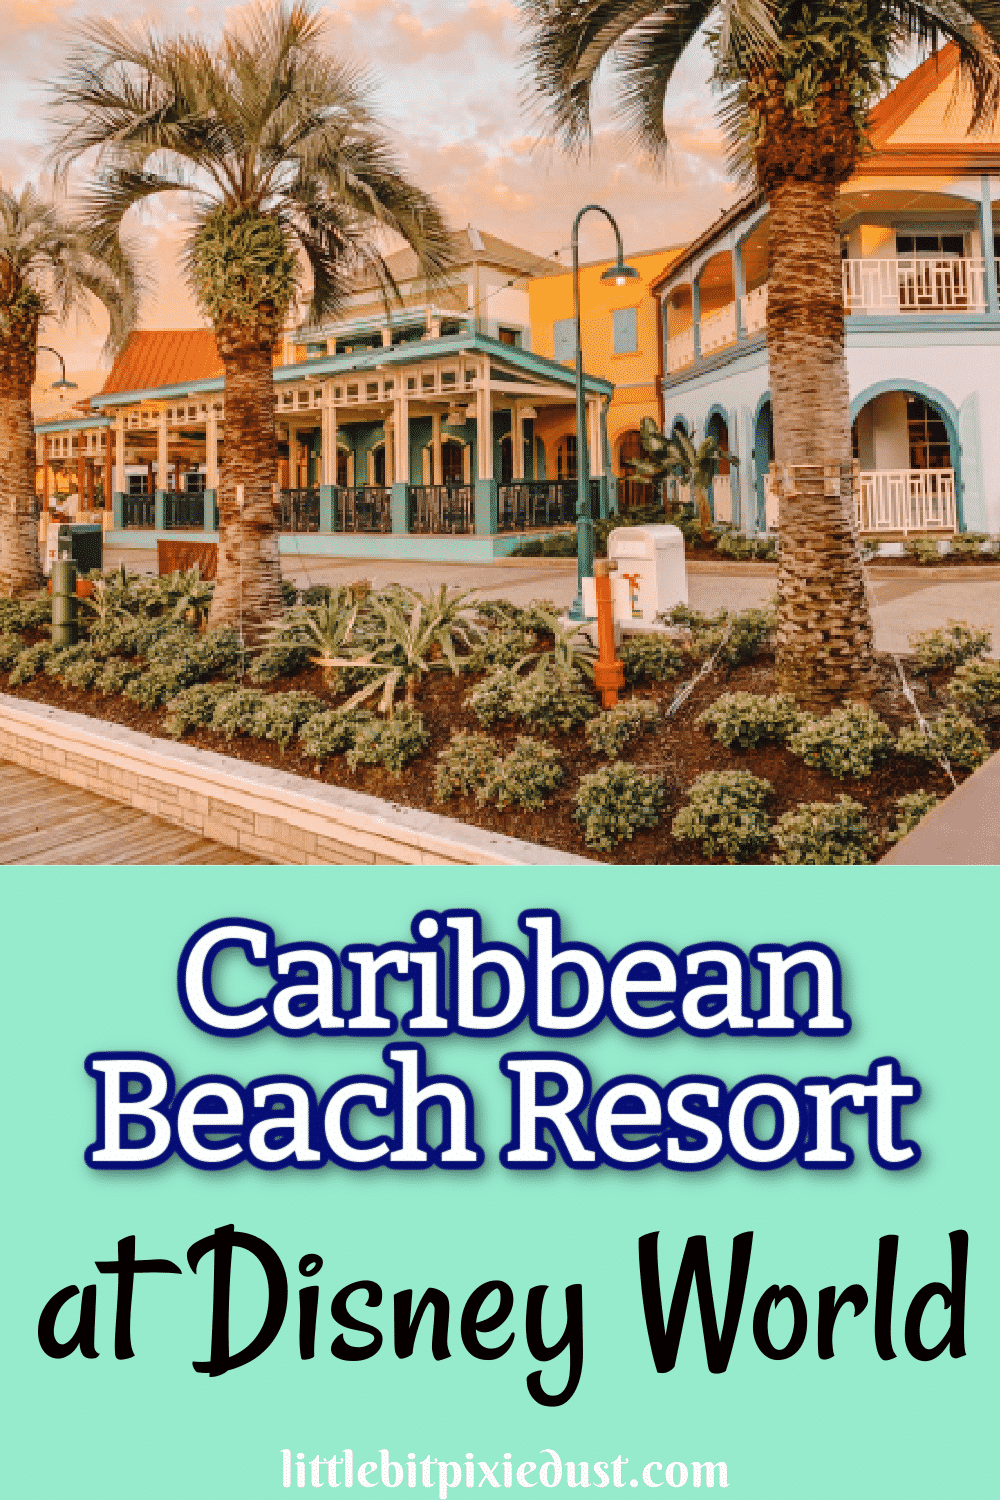 Caribbean Beach Resort